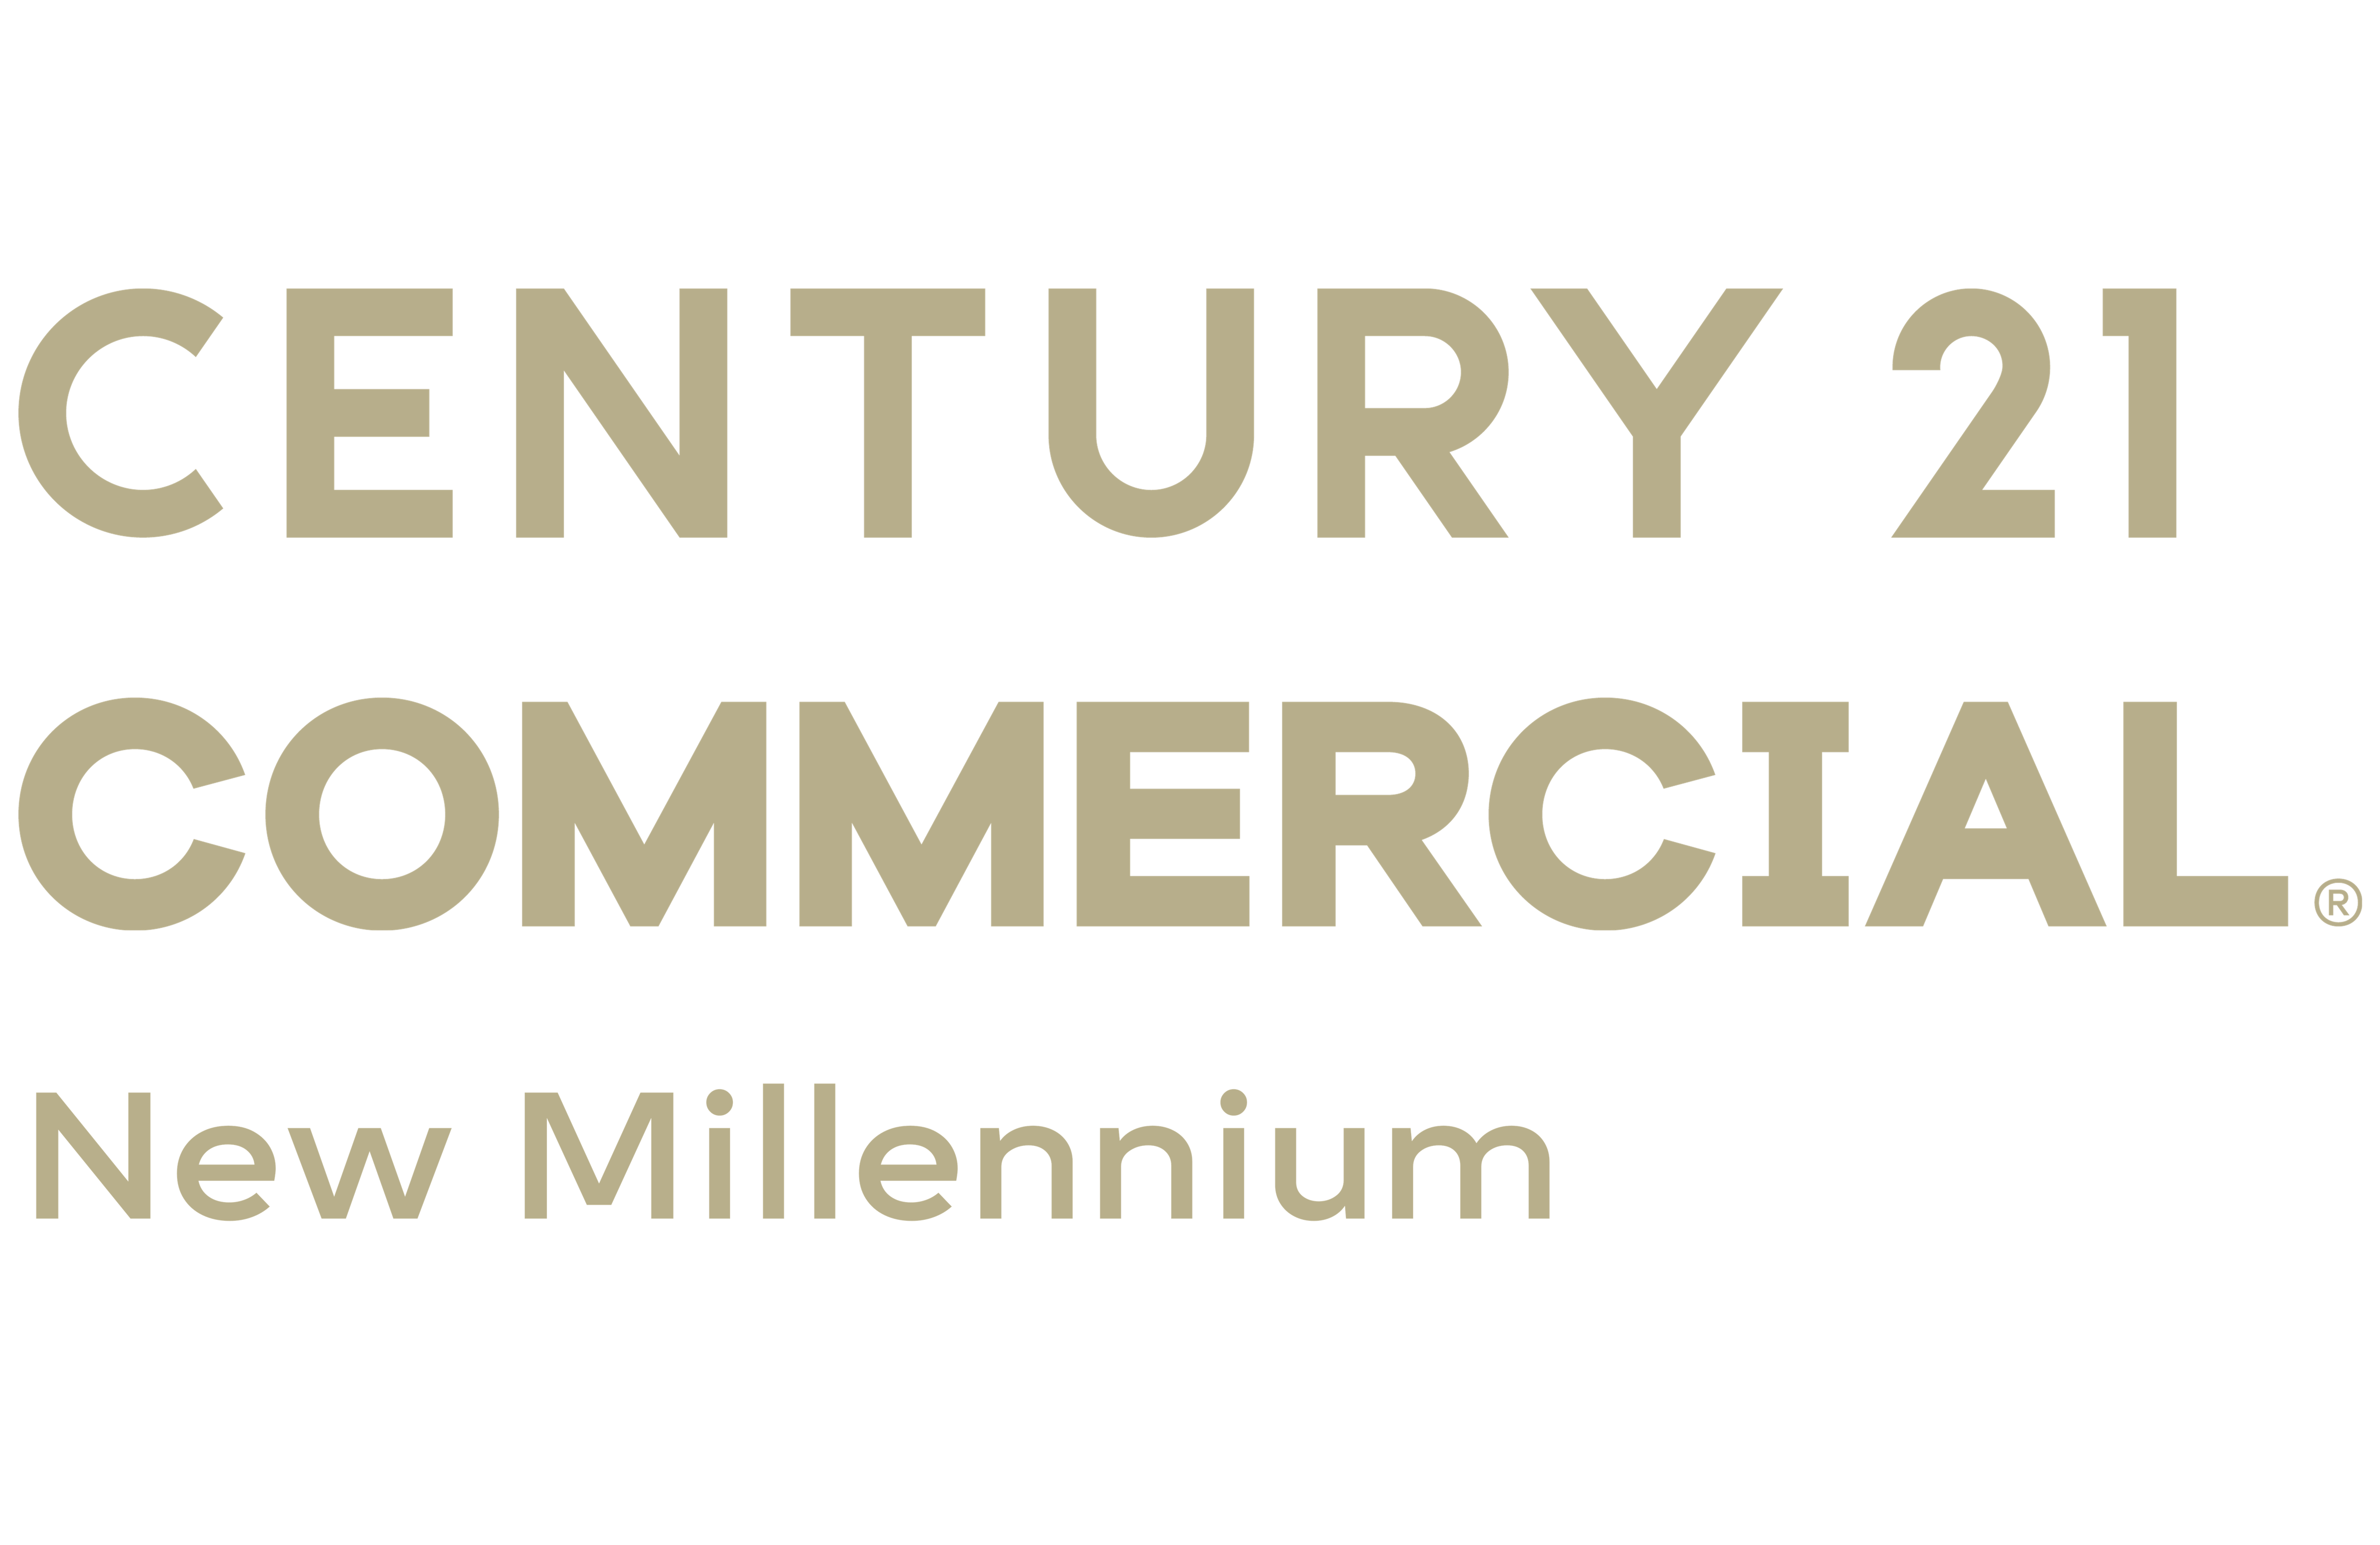 RealMarkets of CENTURY 21 New Millennium logo